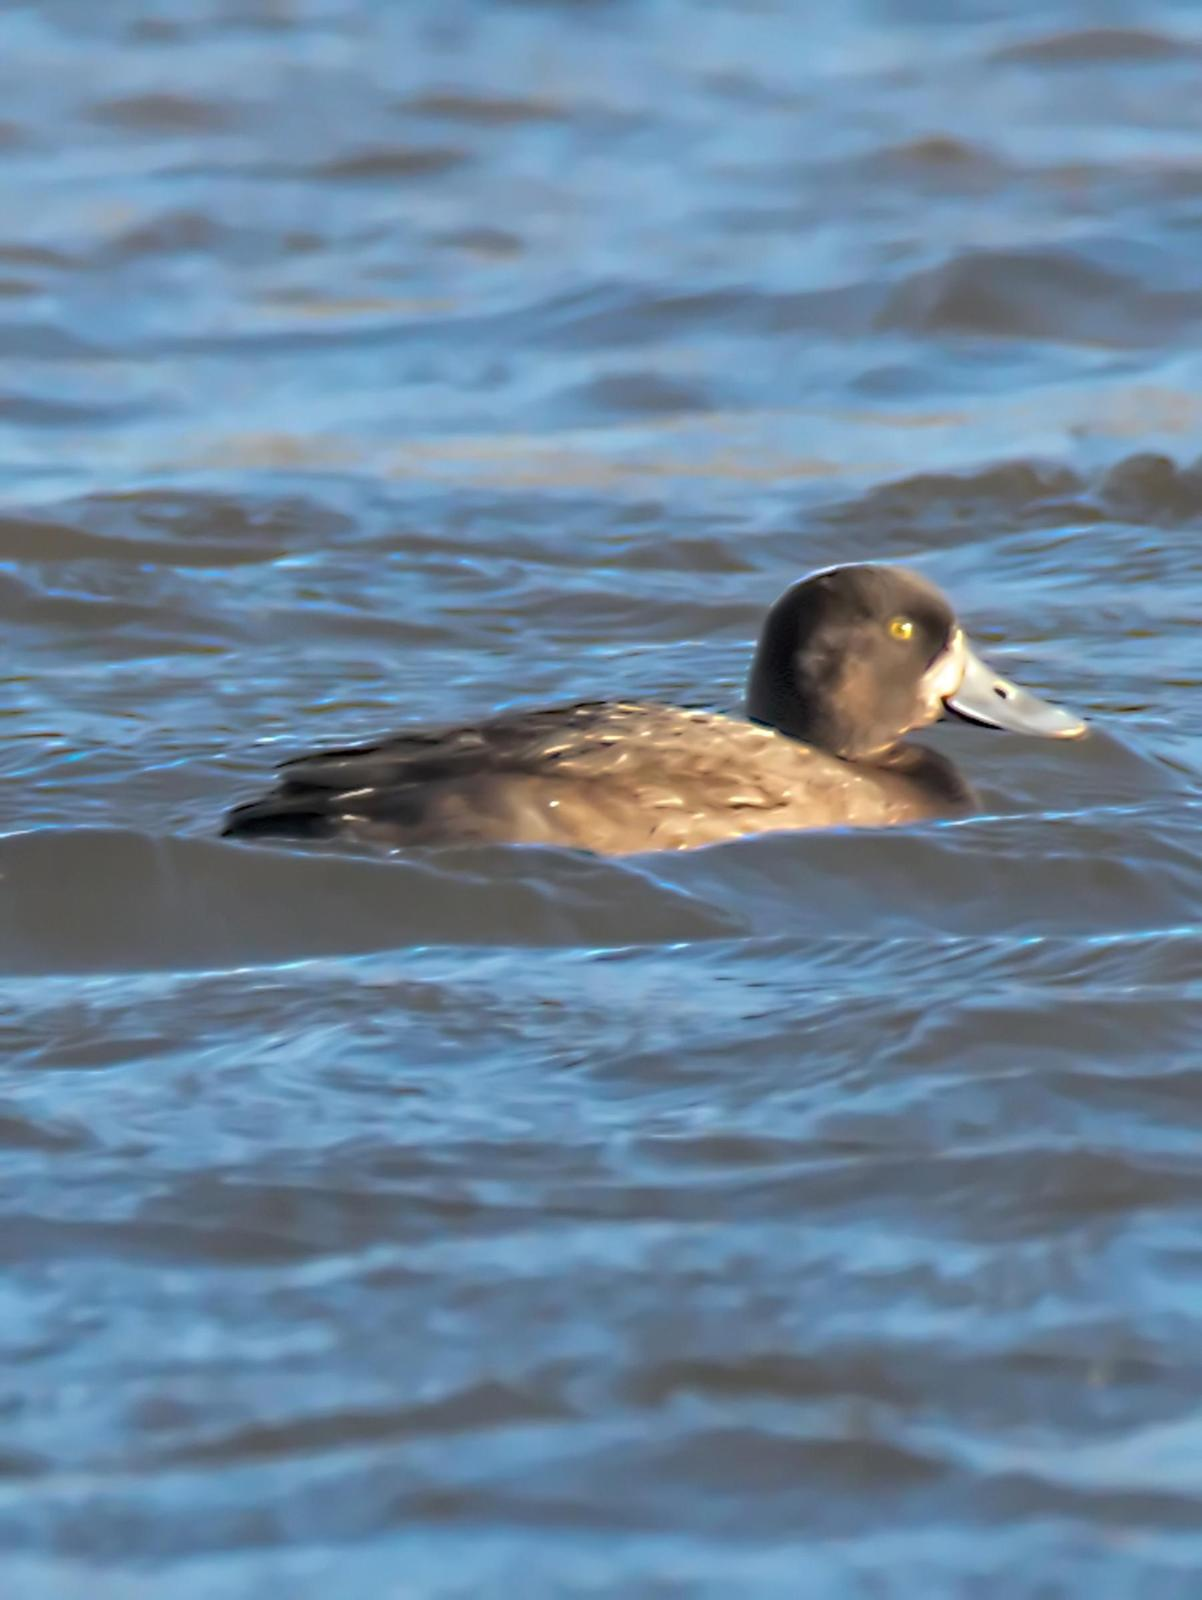 Lesser Scaup Photo by Dan Tallman